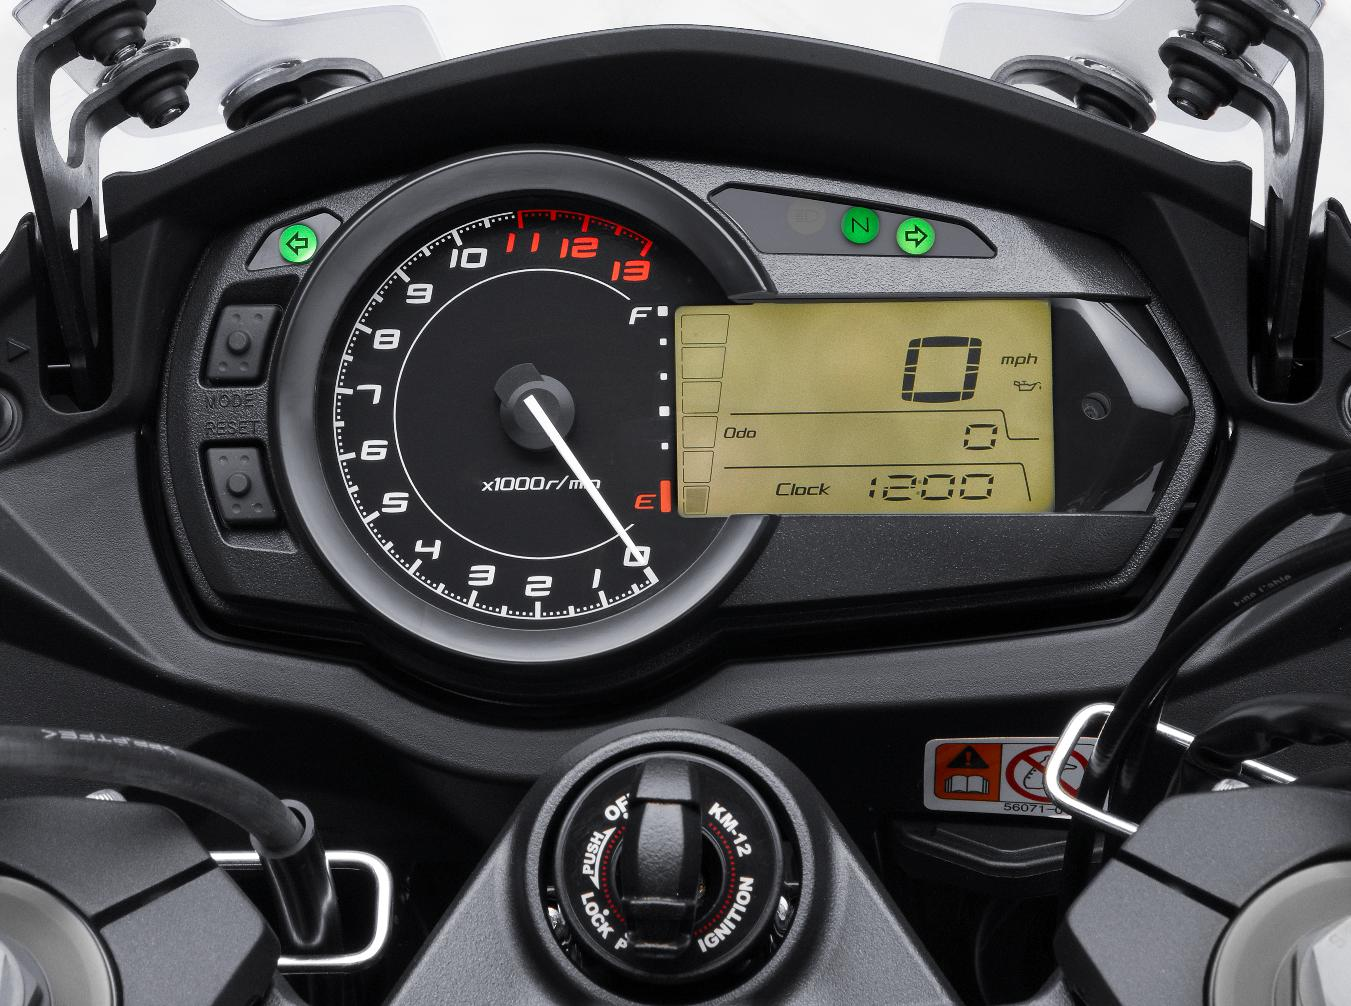 Kawasaki Ninja 1000 2011 dashboard   Motorcycle Wallpapers